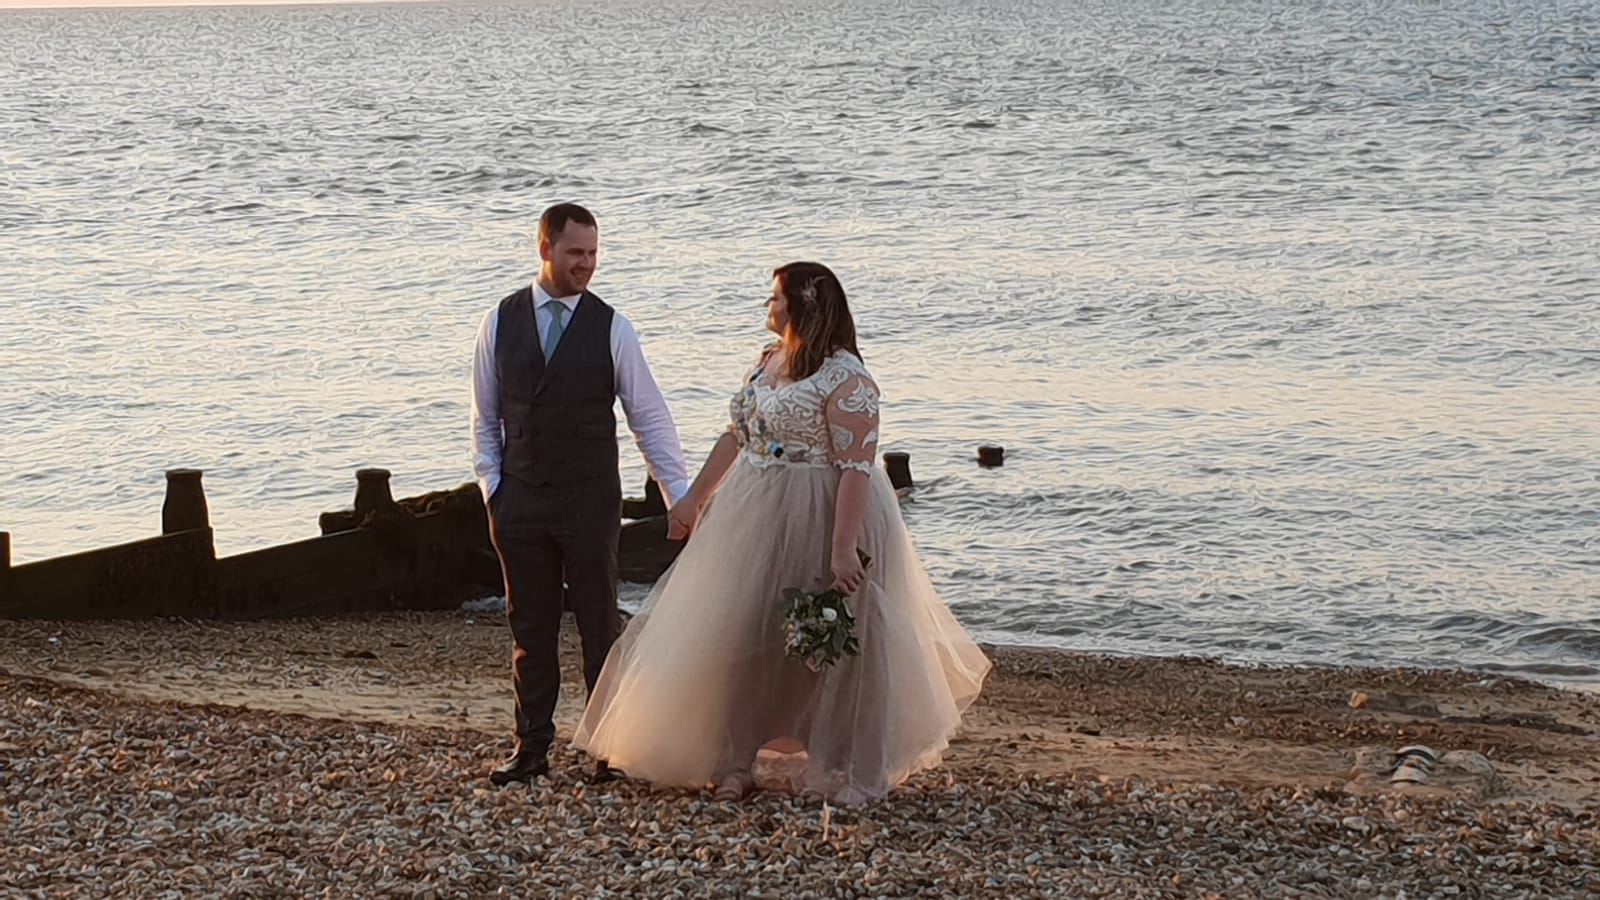 A bride and groom walk on the beach